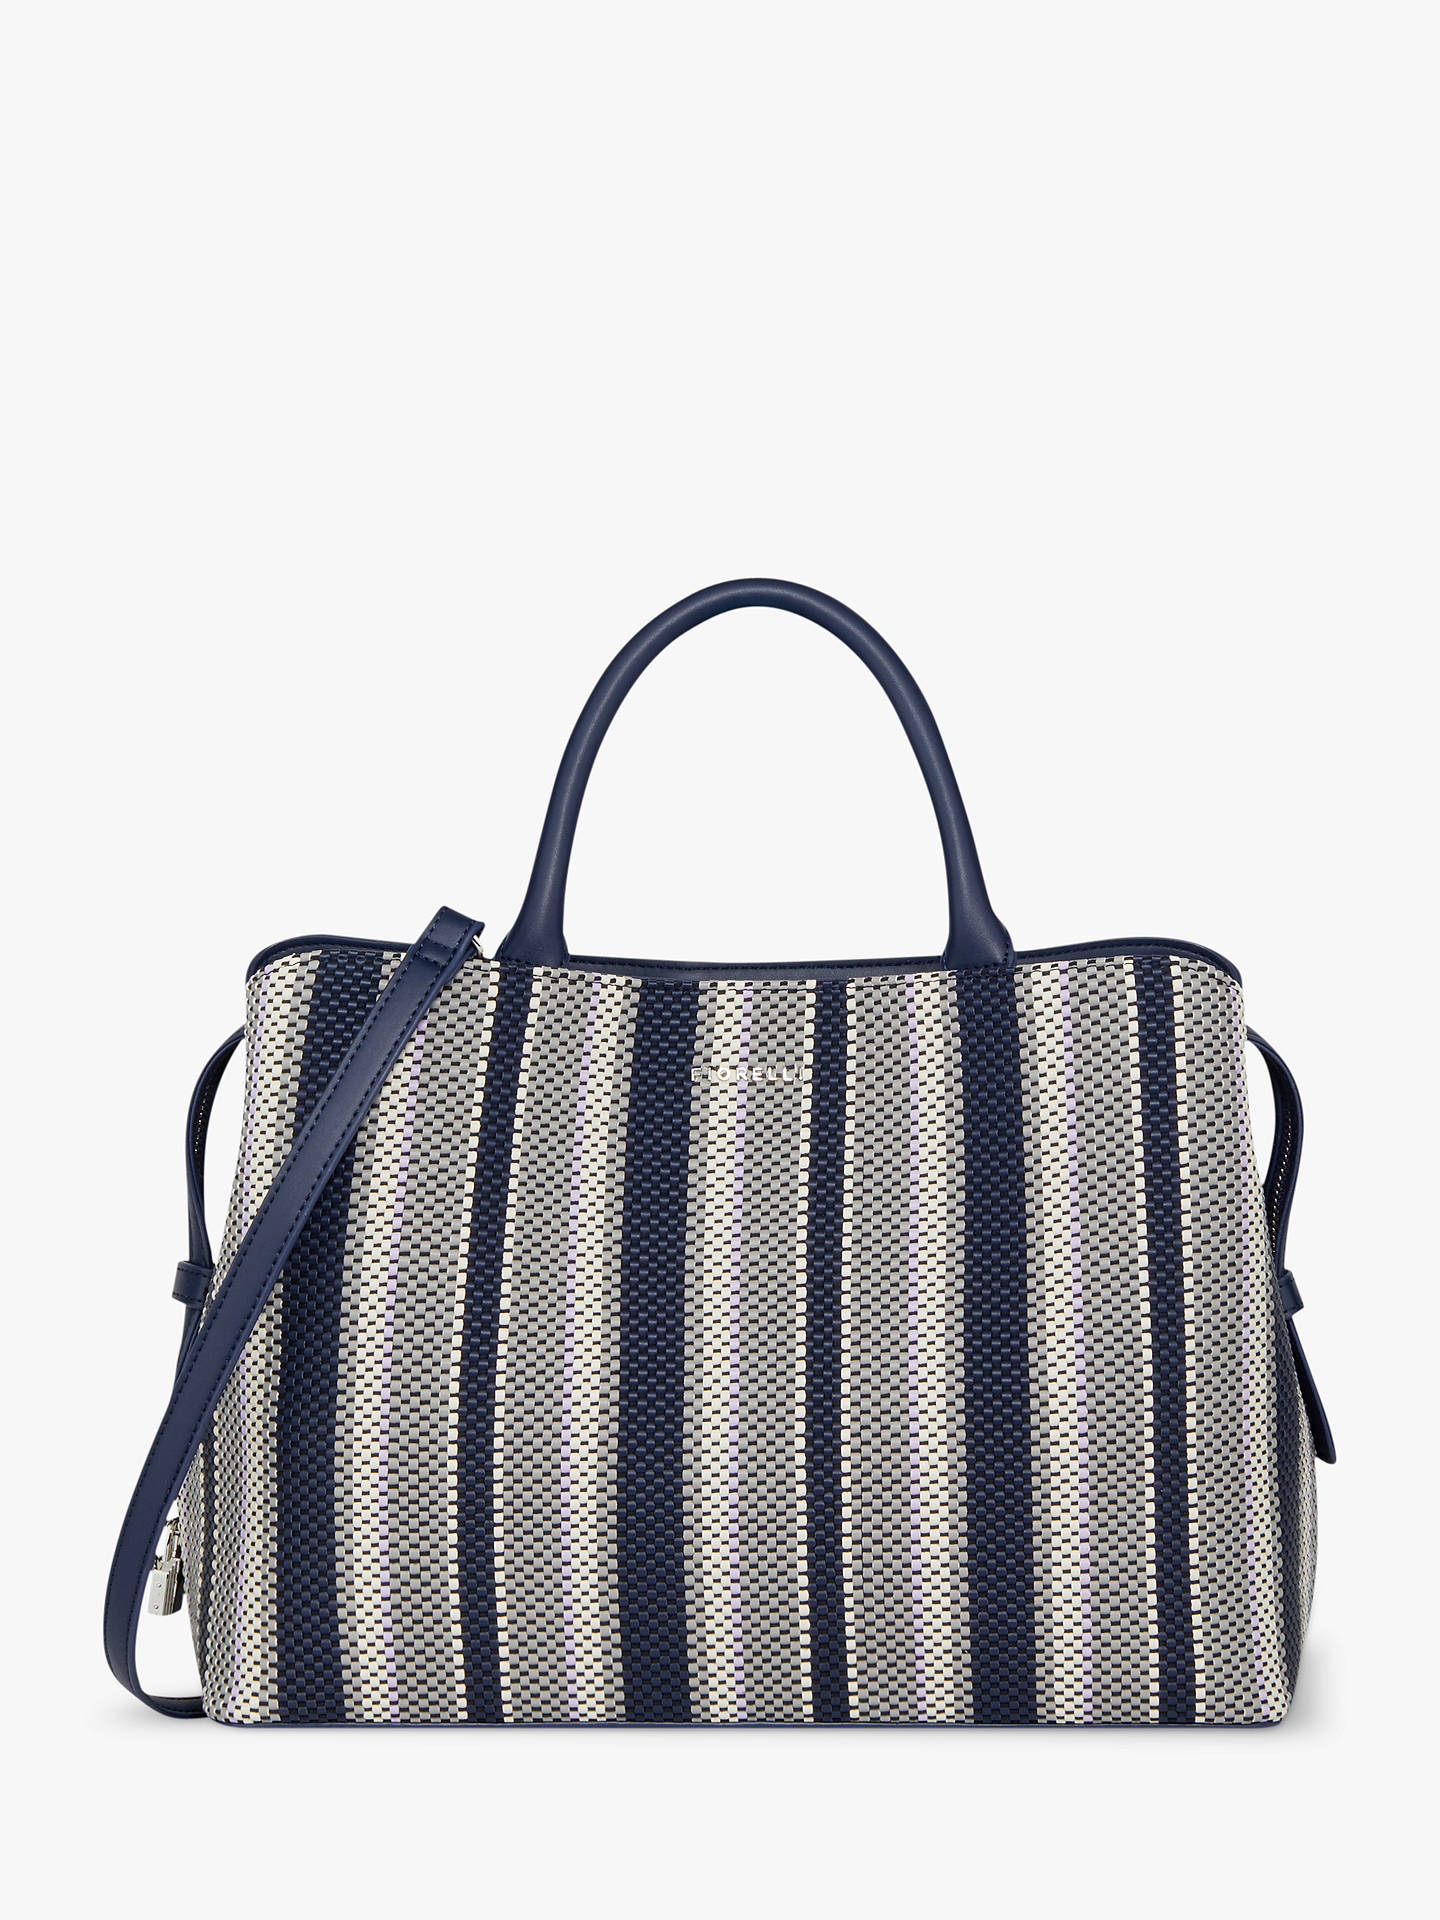 47c92626f435 Buy Fiorelli Bethnal Triple Compartment Grab Bag, Weave Mix Online at  johnlewis.com ...